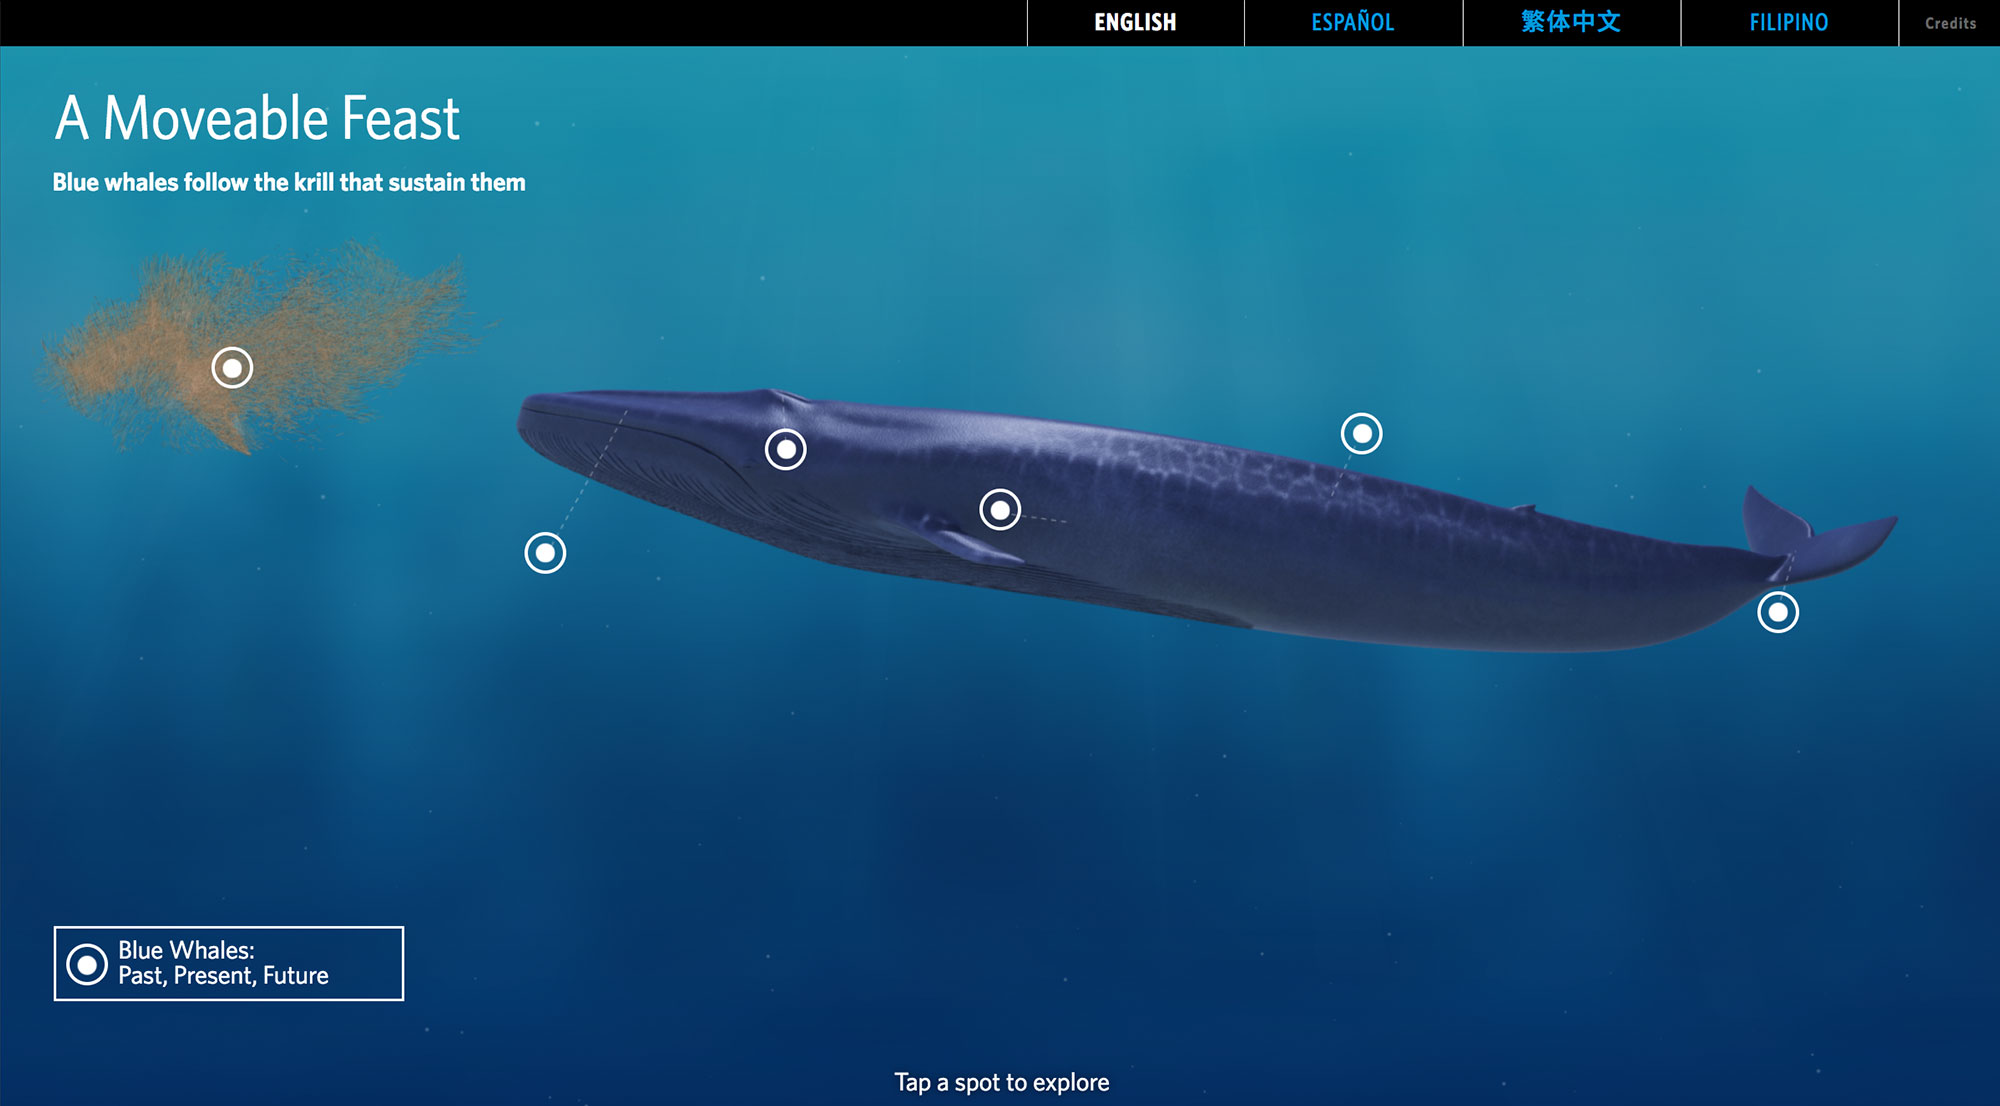 Home screen with hotspots on the whale, krill, and a button to explore historical facts